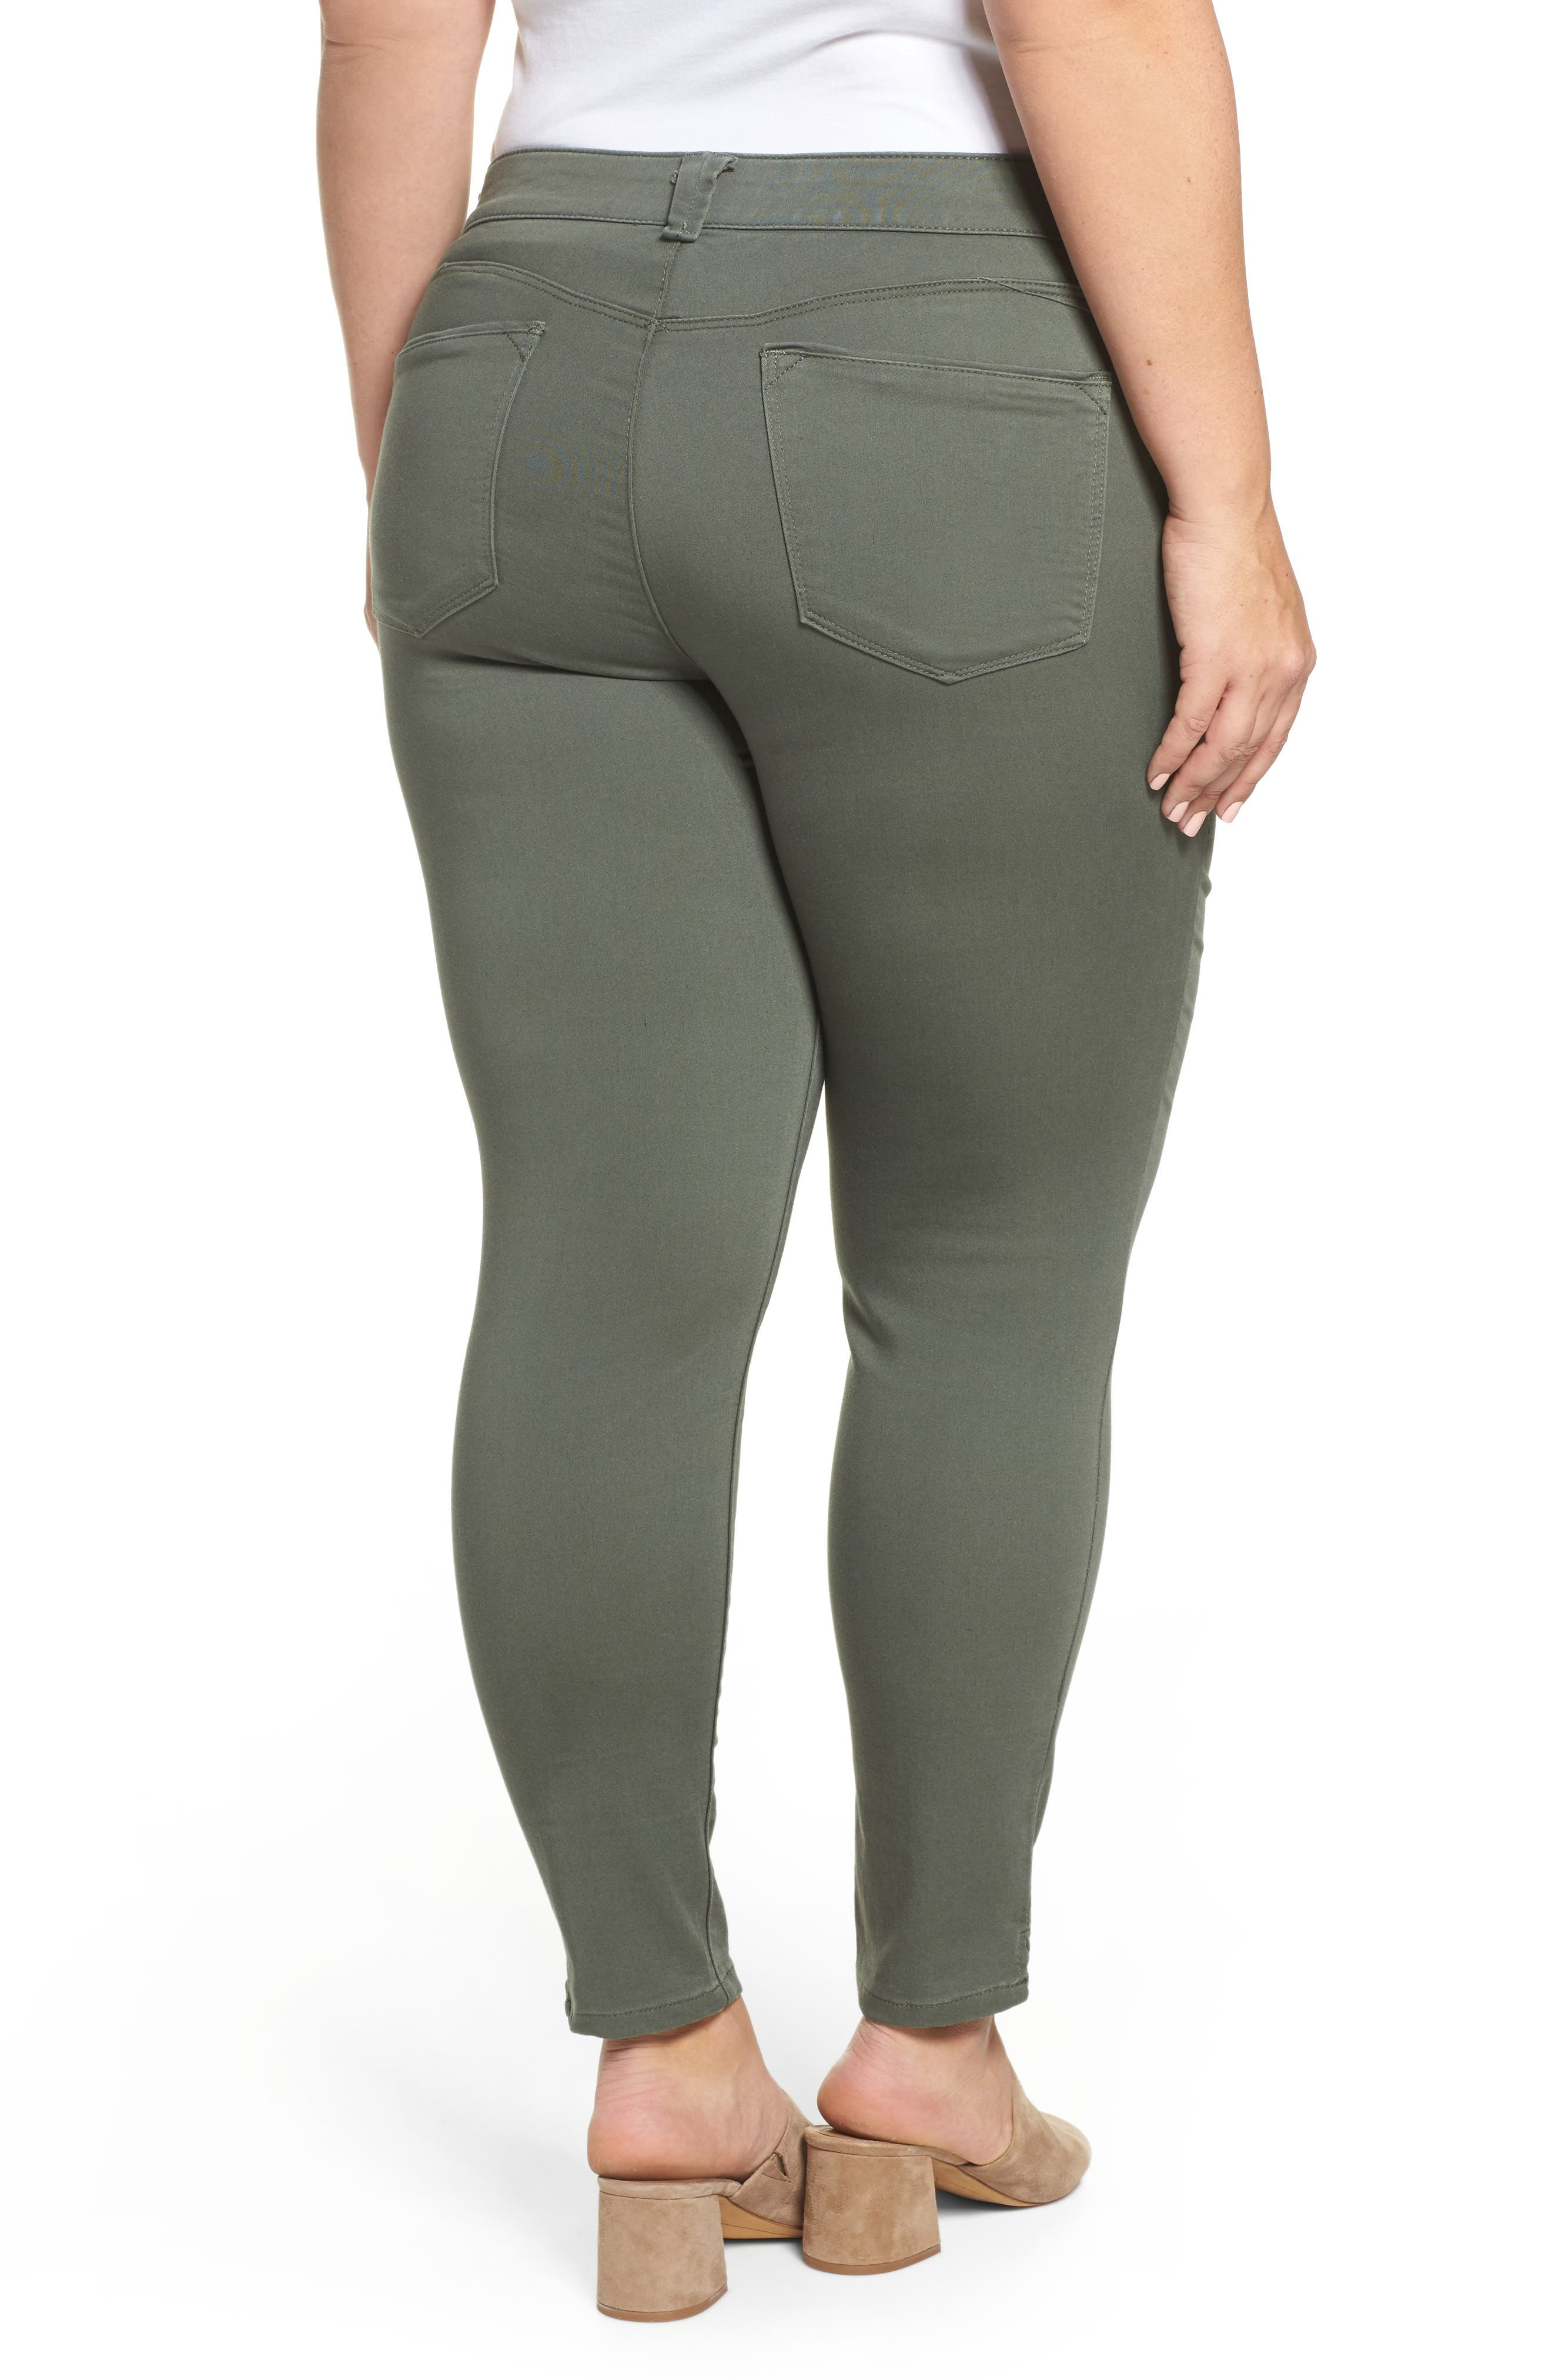 Ab-solution Ankle Pants,                             Alternate thumbnail 2, color,                             THYME